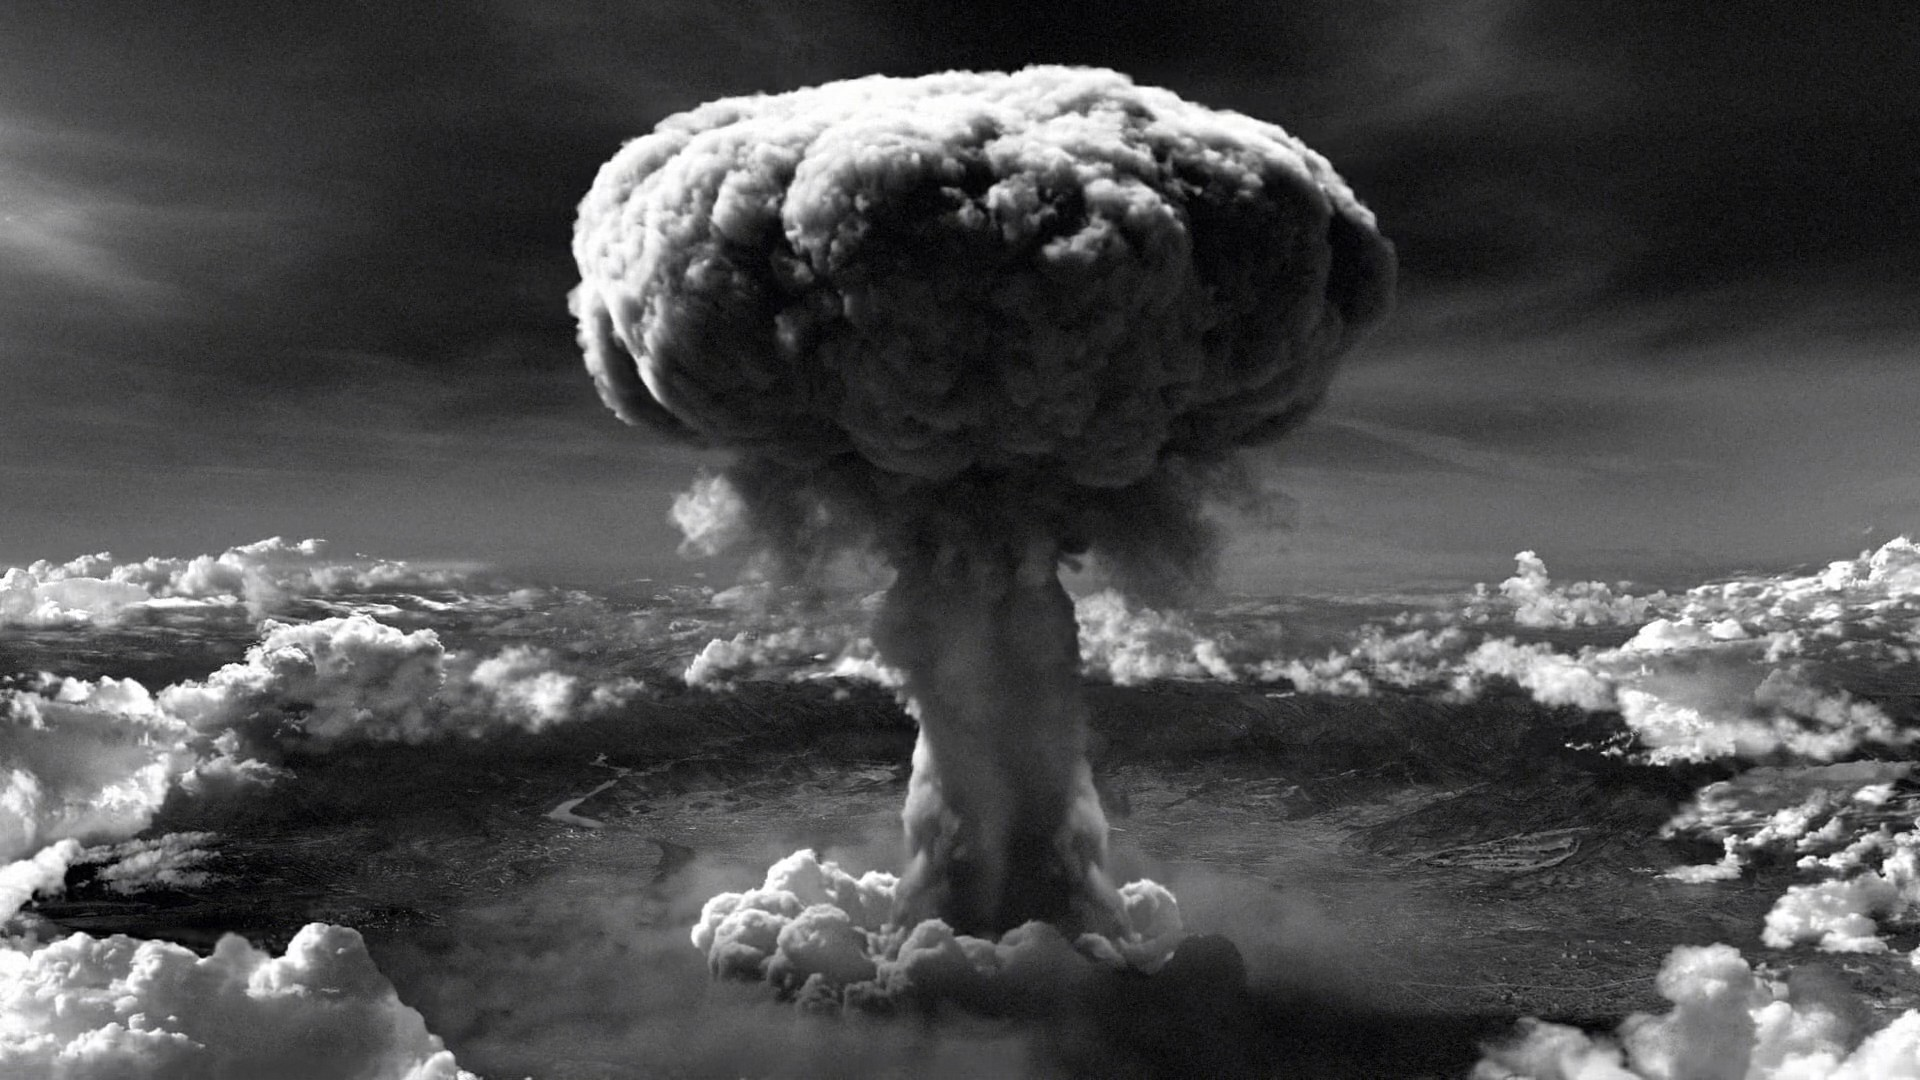 an analysis on few writings about united states dropping a nuclear bomb on japan